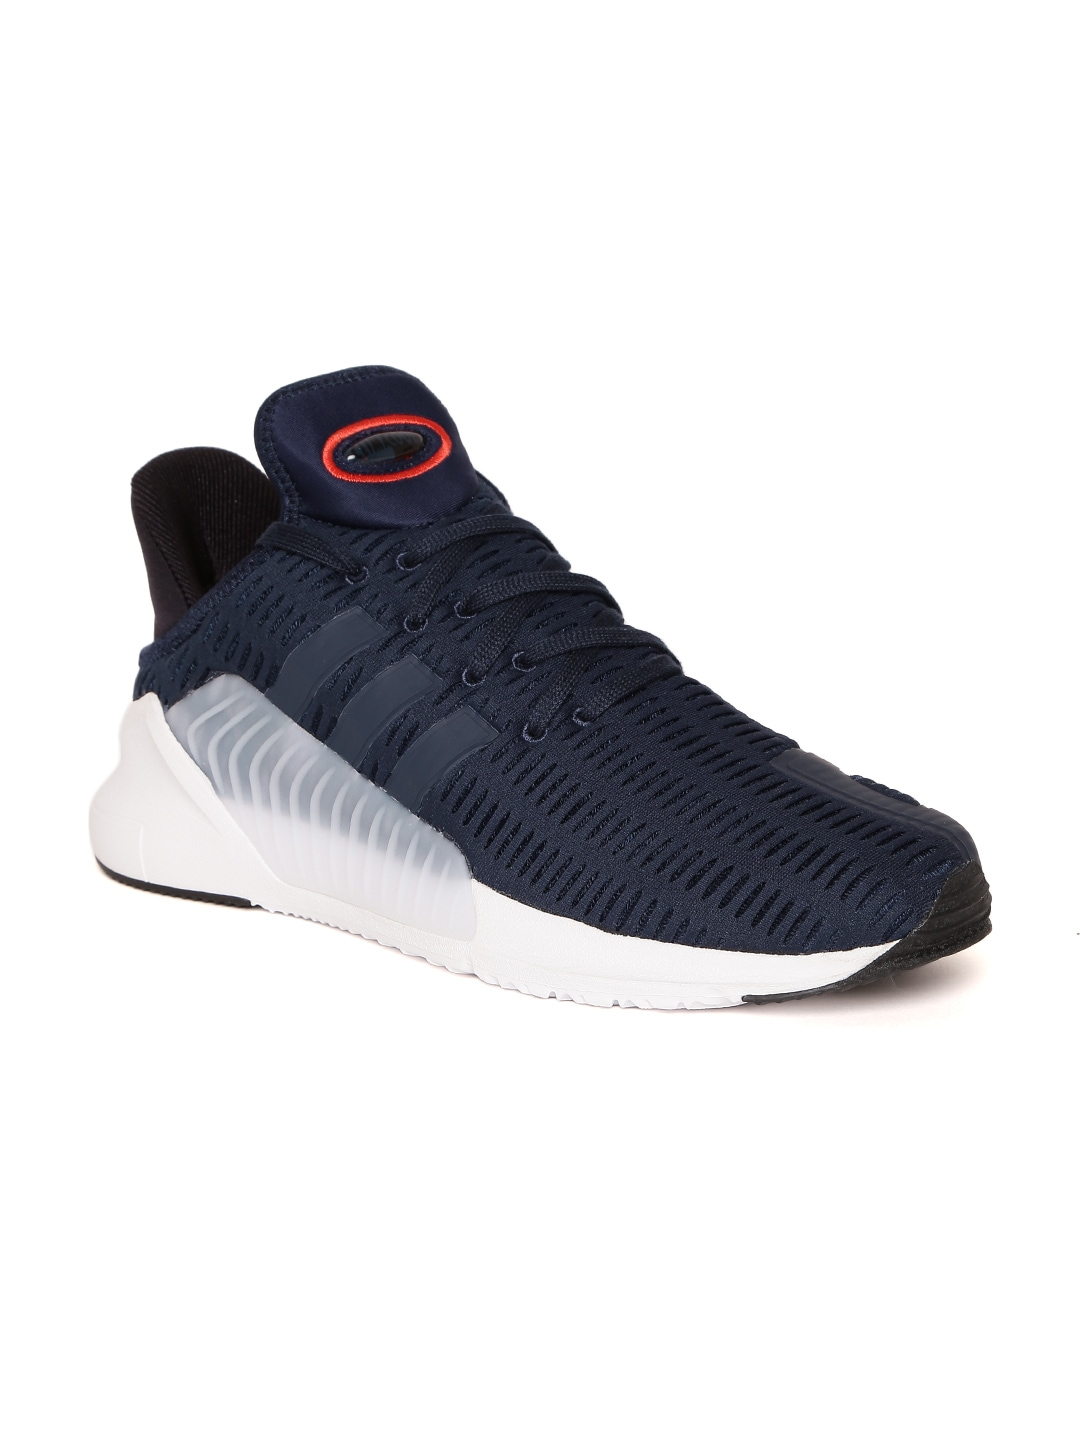 ea7099efd7fb Adidas Climacool Backpack Tracksuits Casual Shoes - Buy Adidas Climacool  Backpack Tracksuits Casual Shoes online in India